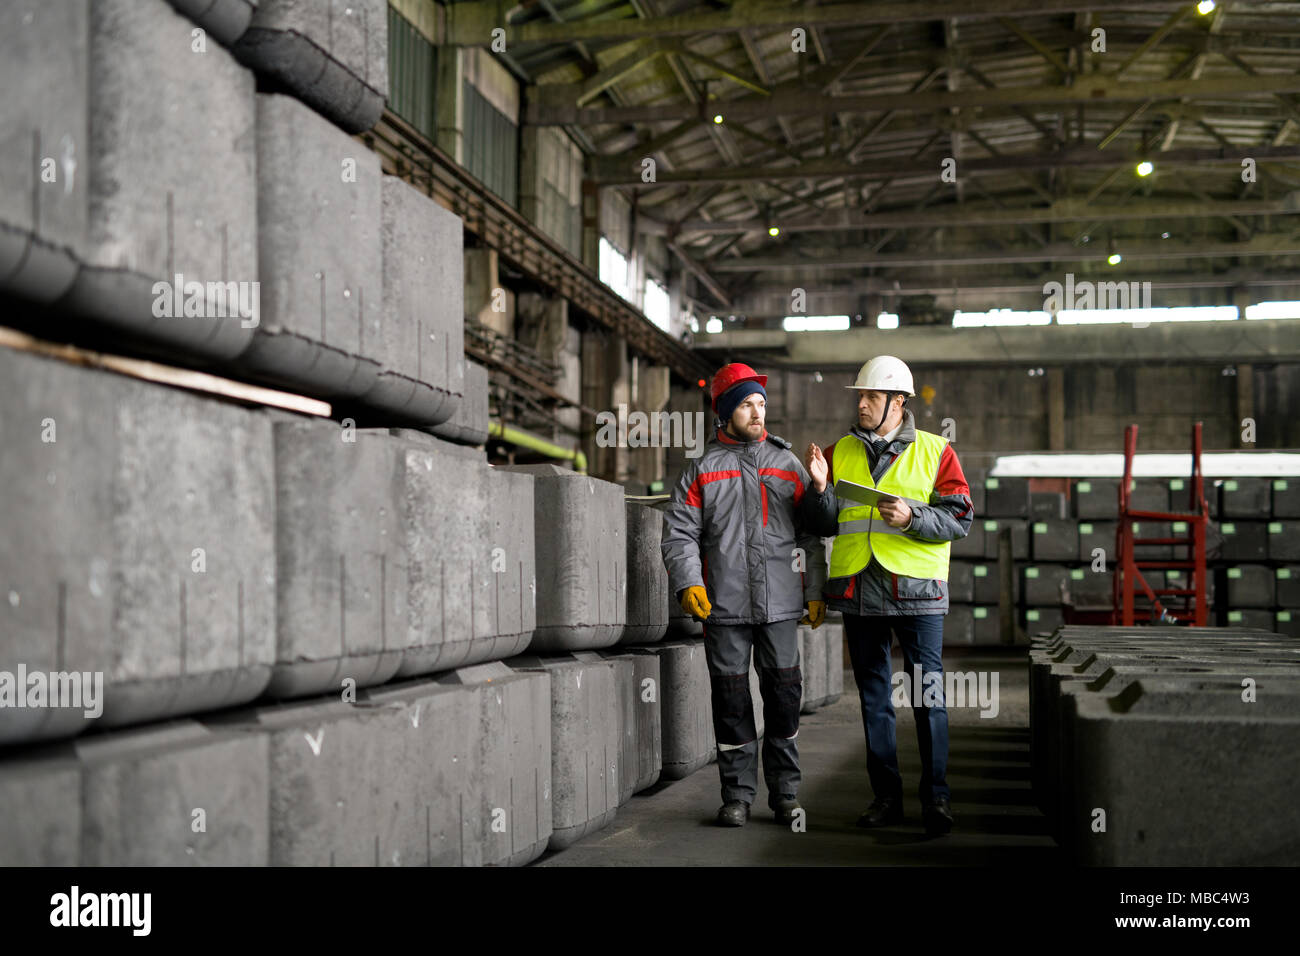 Heavy Industry Workers - Stock Image